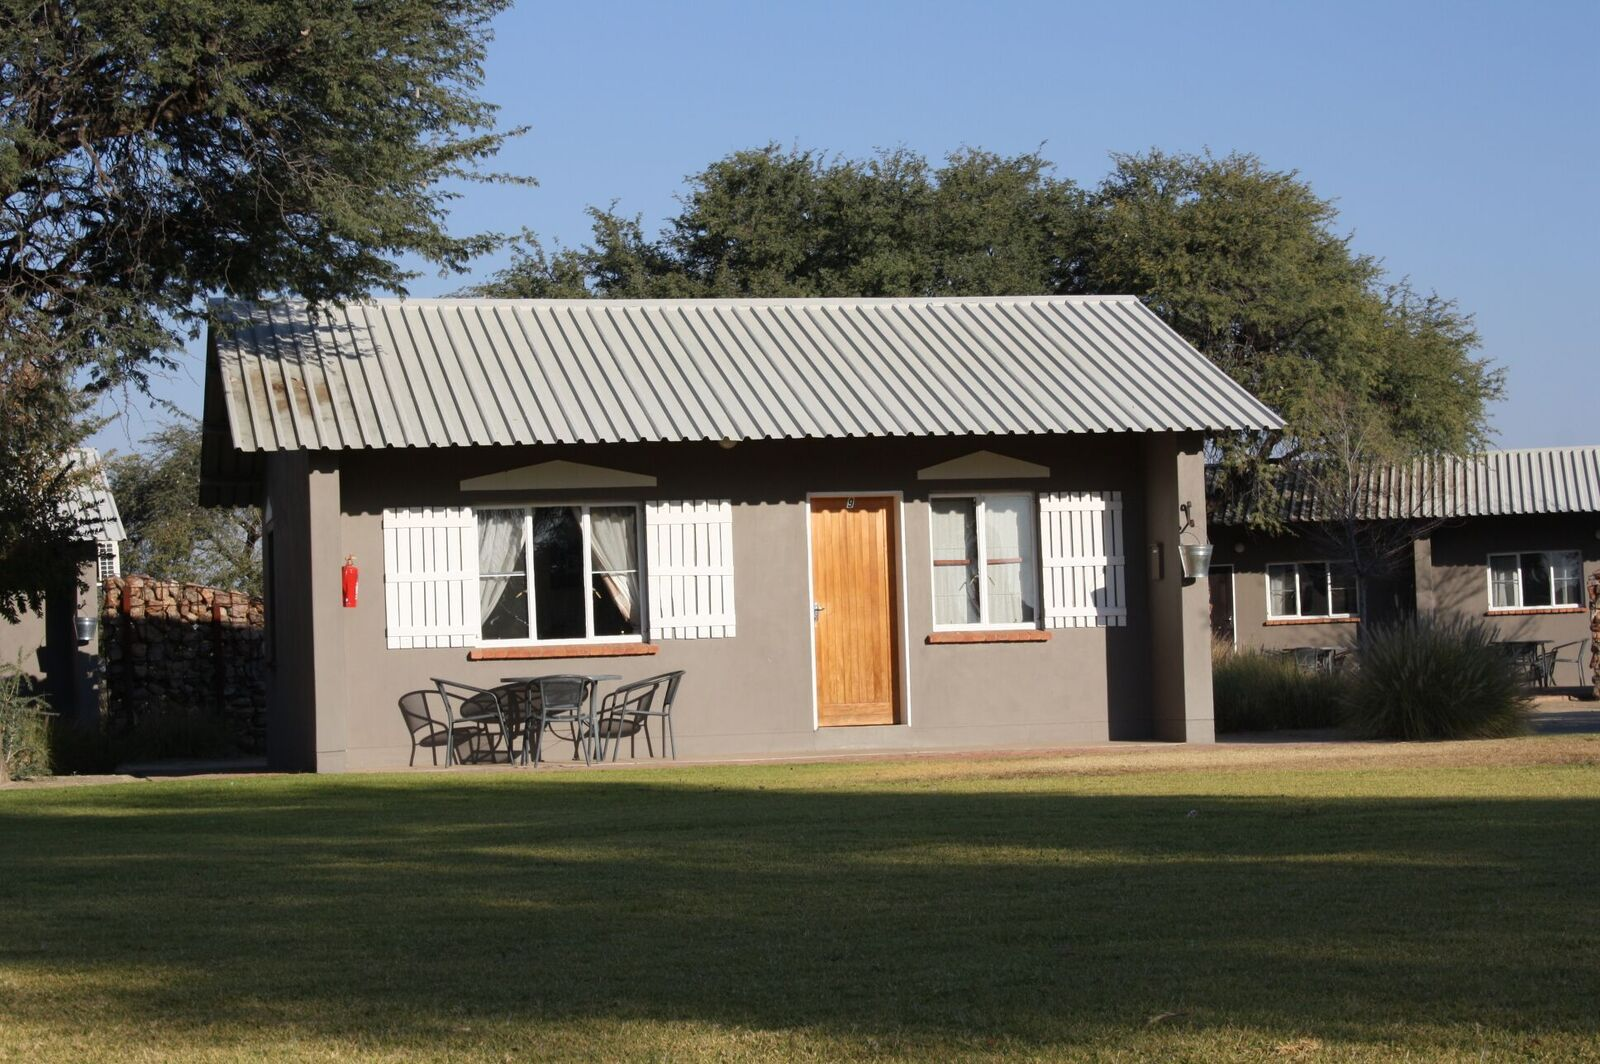 House in Namibia - htcytCPz.jpeg